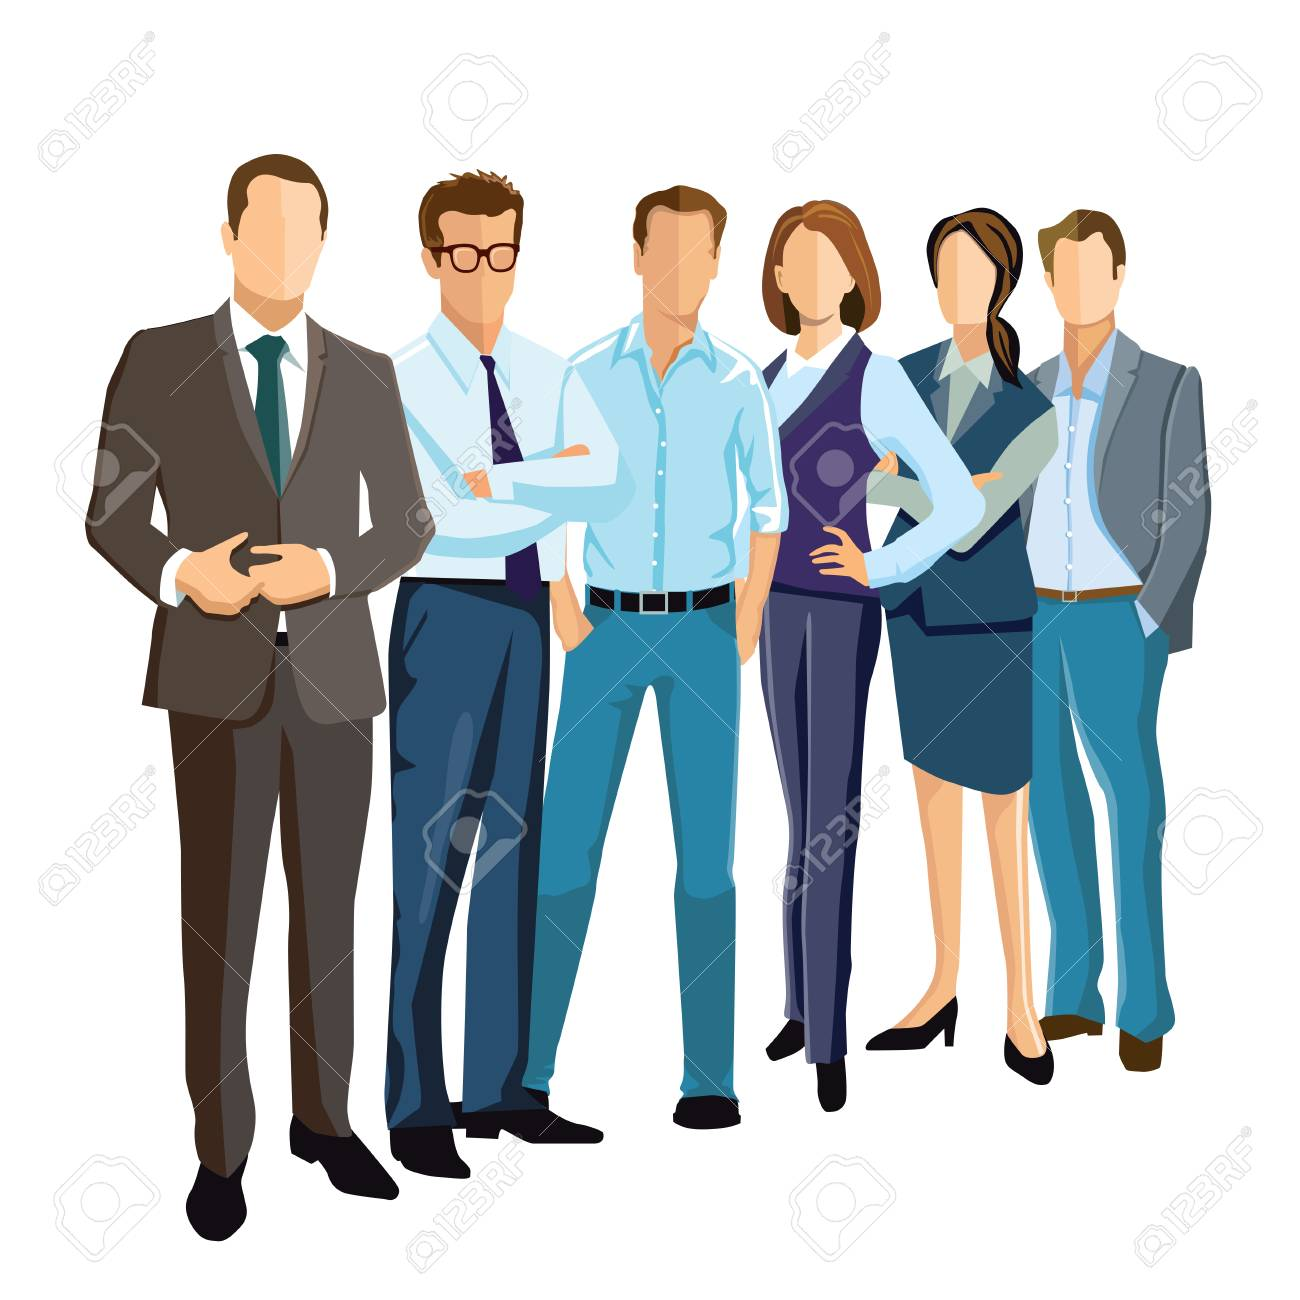 people group presentation illustration royalty free cliparts